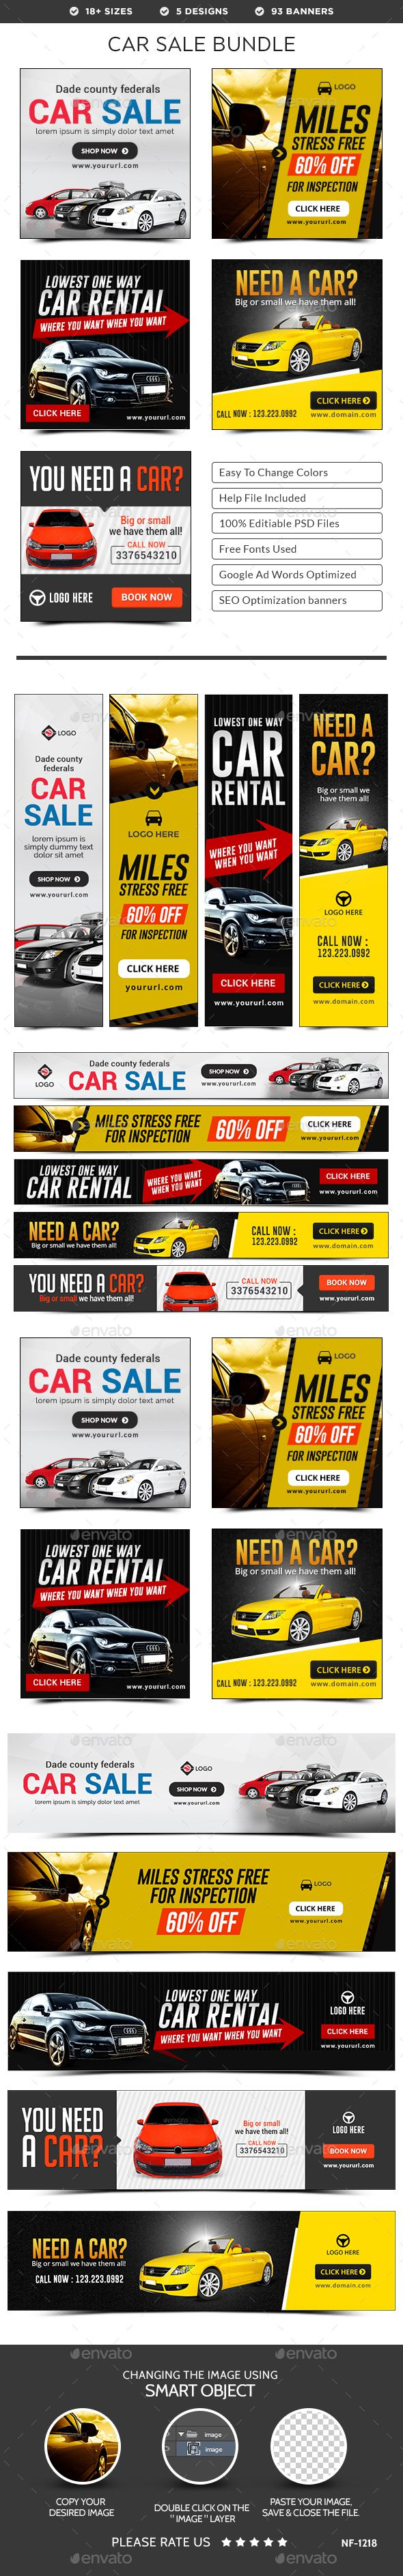 Car sale banners bundle 5 sets 93 banners